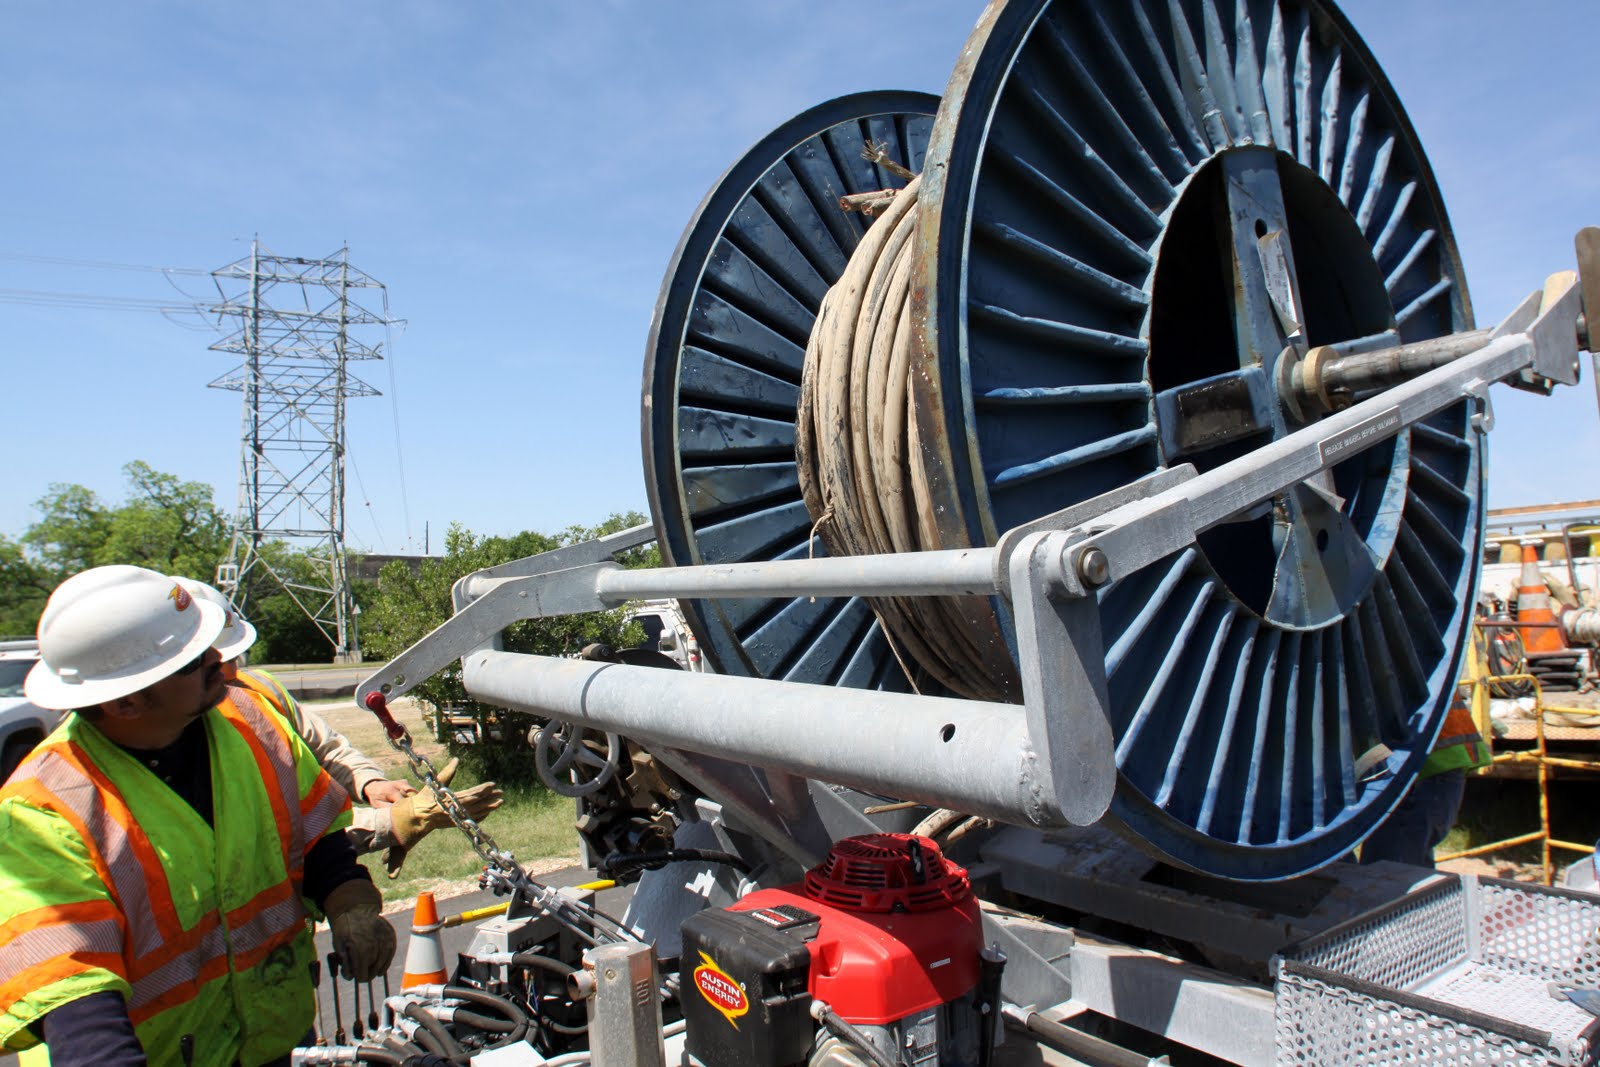 Austin energy linemen use reels to install new cable as well as take out old cable that is being replaced the reels can each hold 1 200 linear feet of